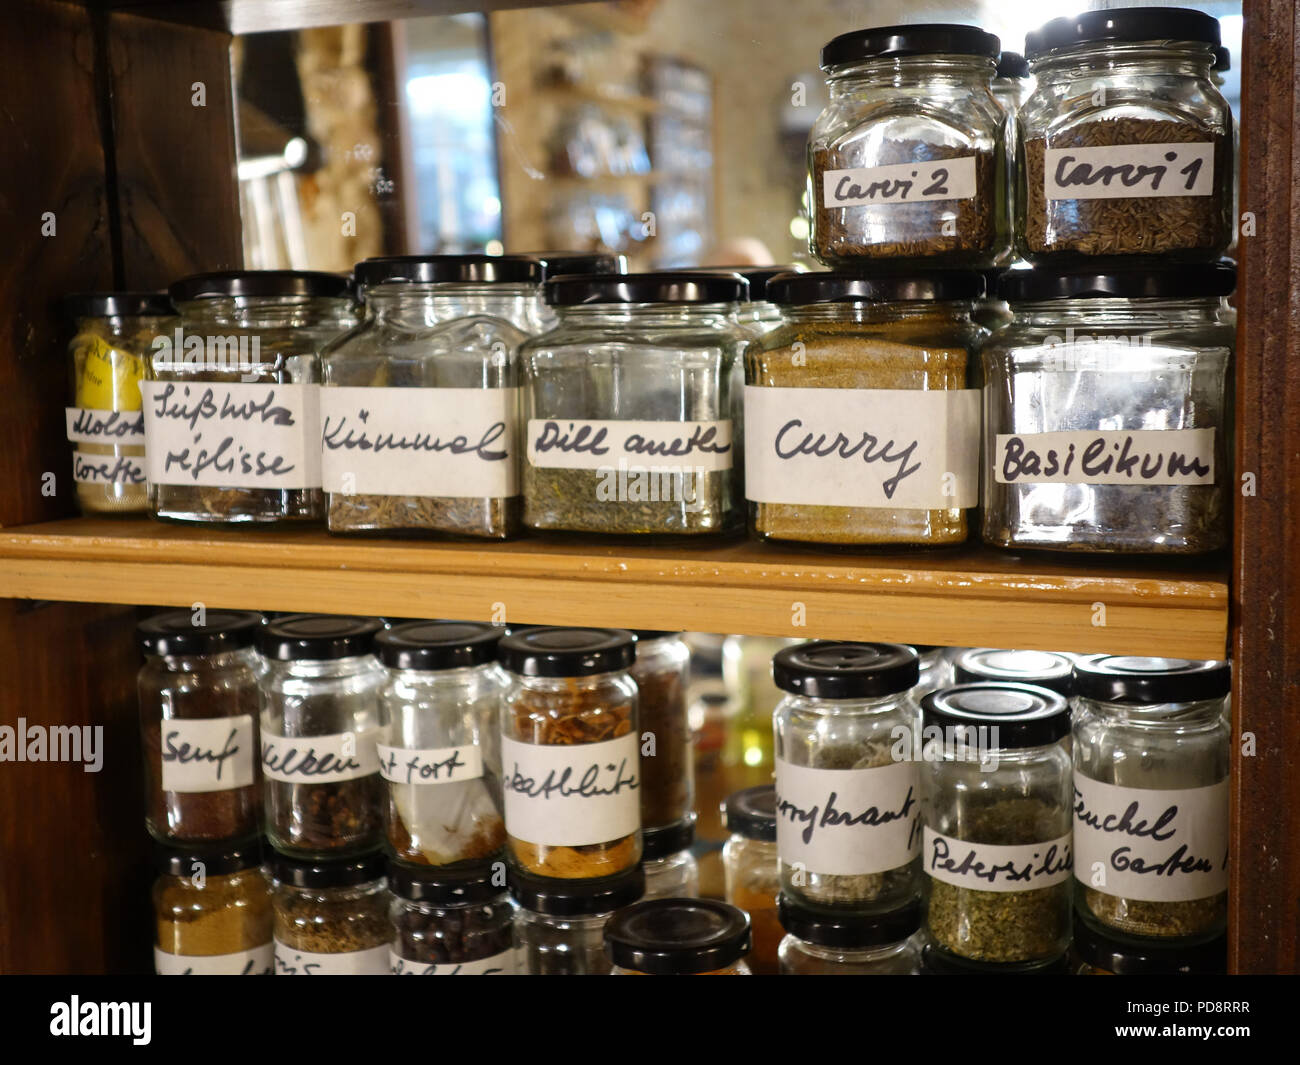 https www alamy com neatly labeled spice jars and herbs on a shelf in a french farmhouse kitchen image214709259 html